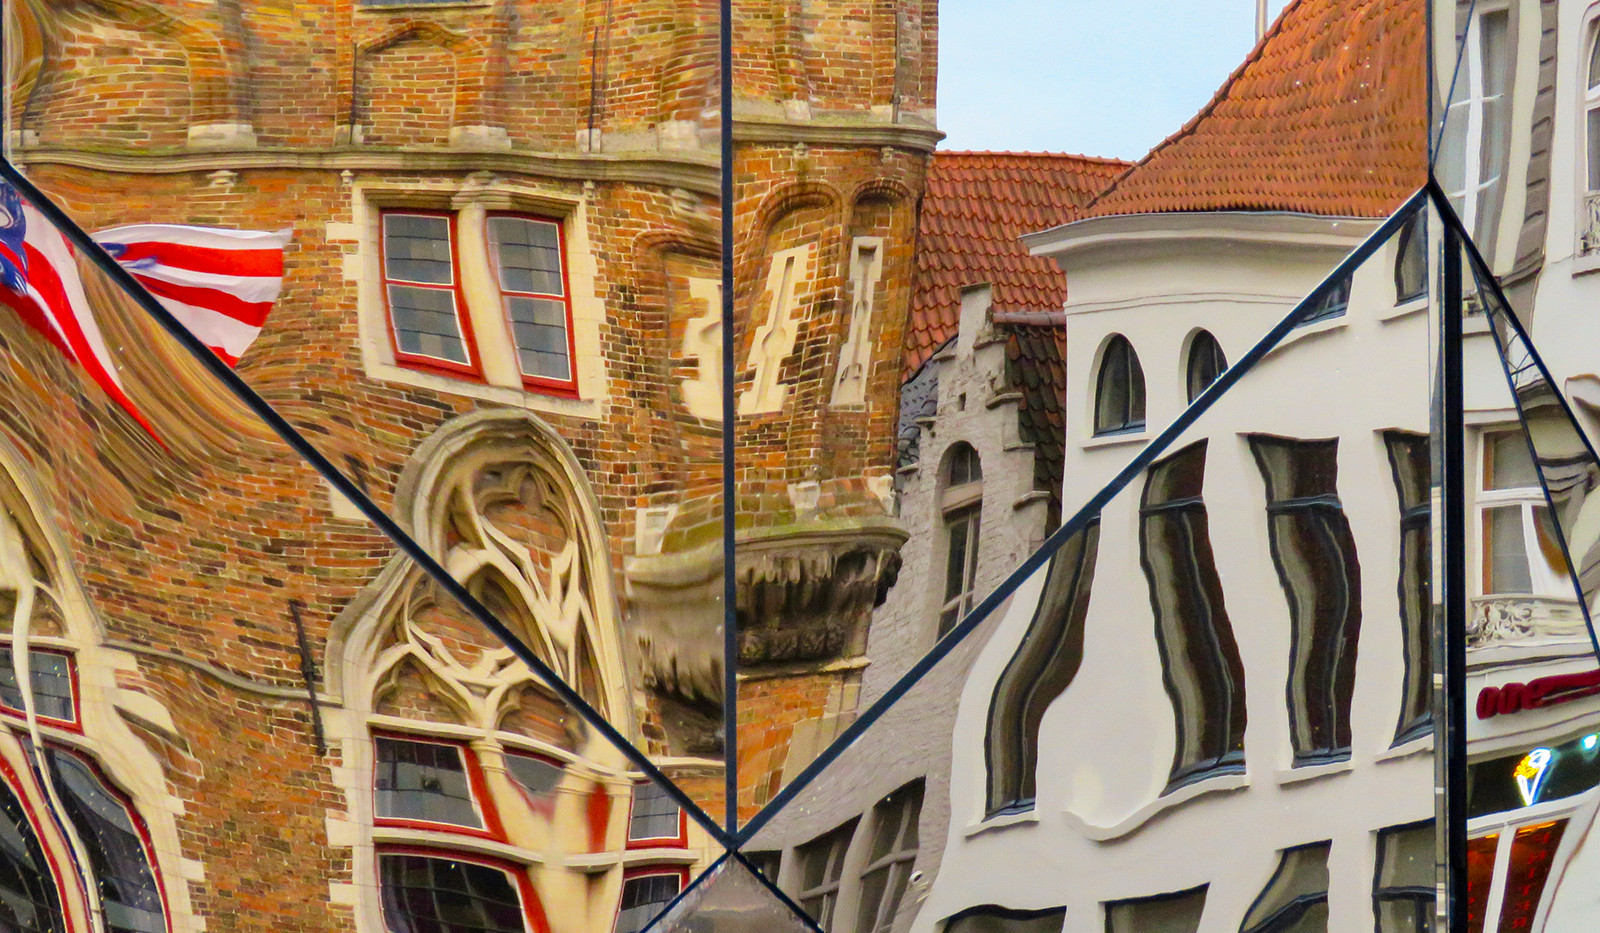 Bruges in the Mirror